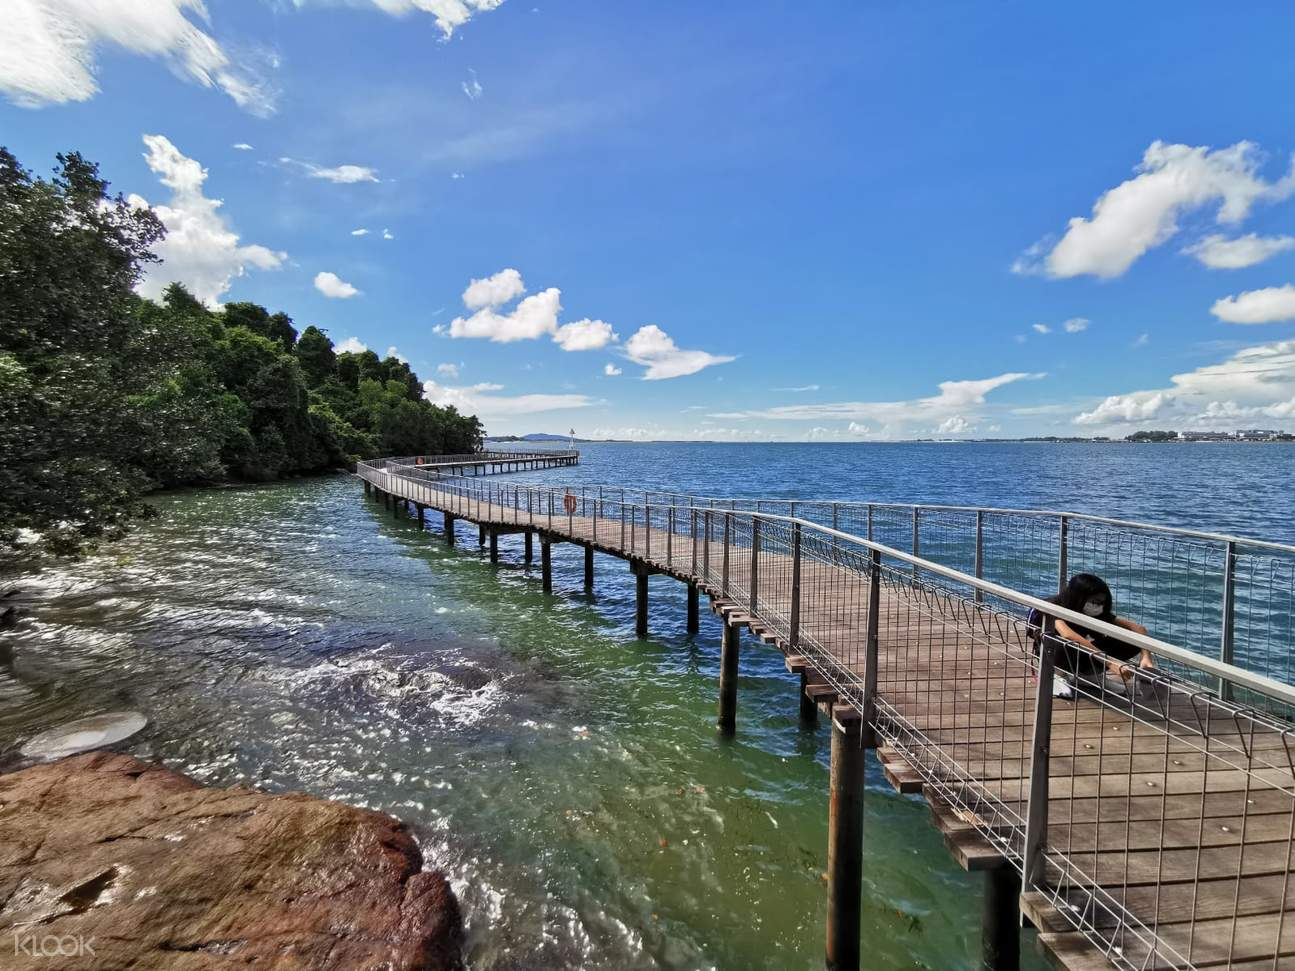 Pulau Ubin is an island which is located at the northeast of mainland Singapore